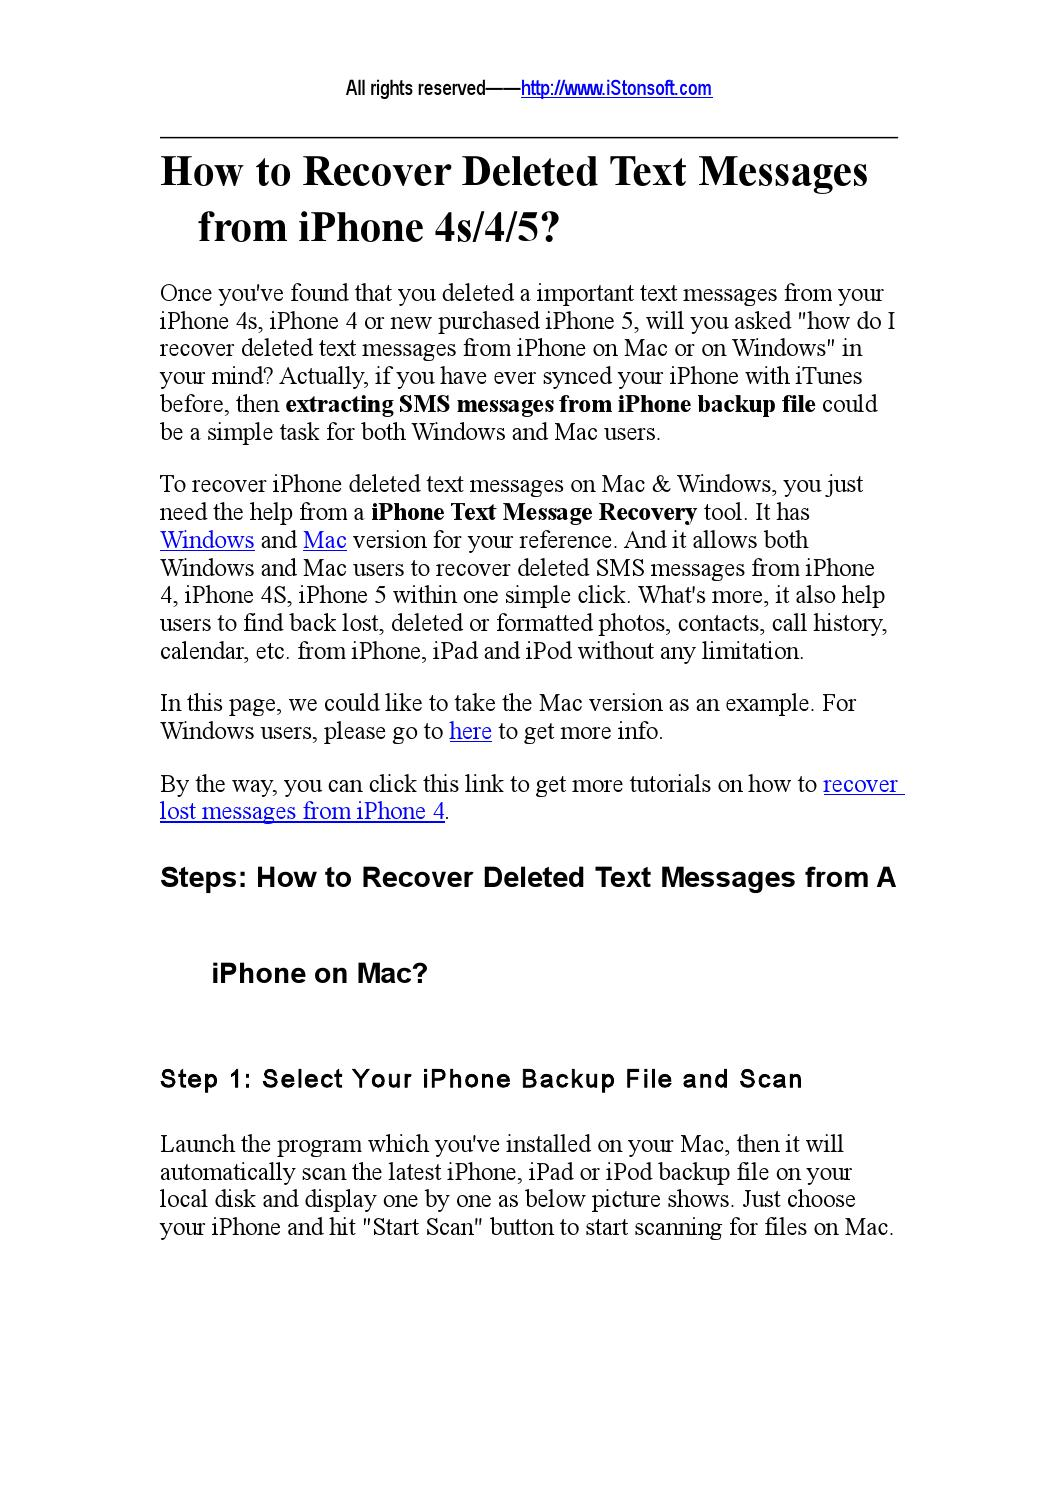 How To Recover Deleted Text Messages From Iphone 5 By